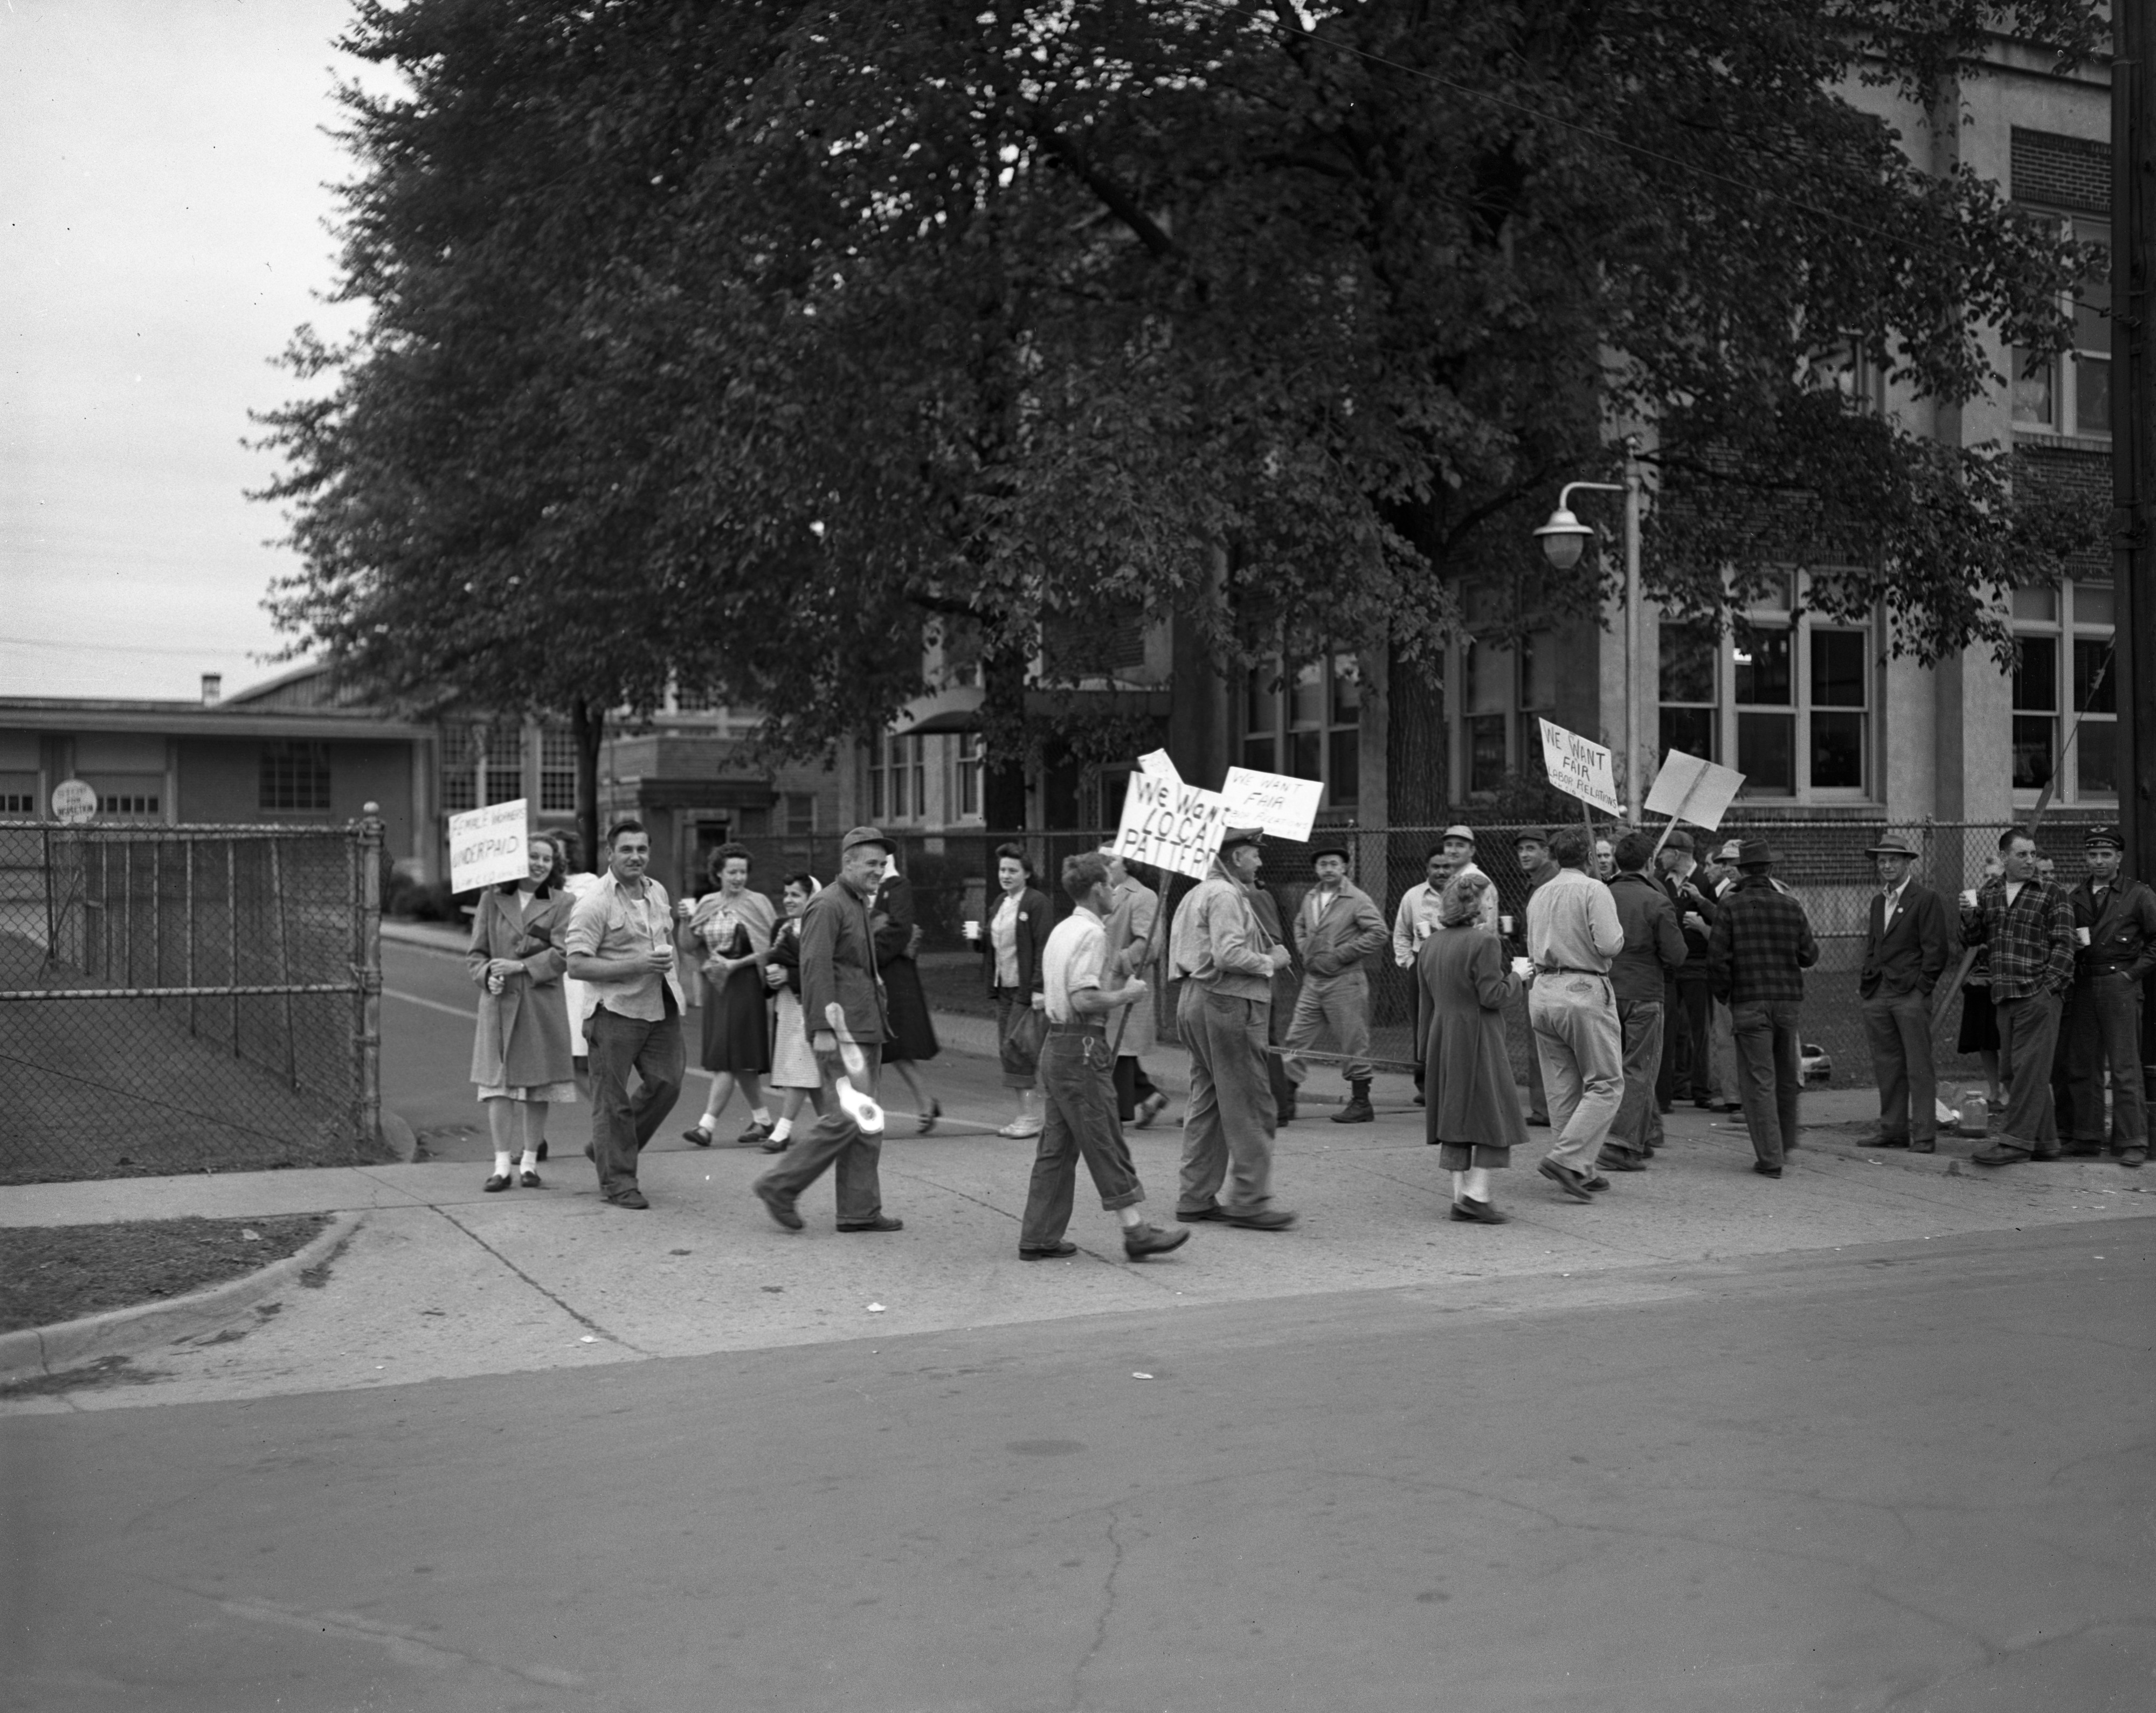 First day of picketing in the Hoover Ball Company strike, September 1948 image